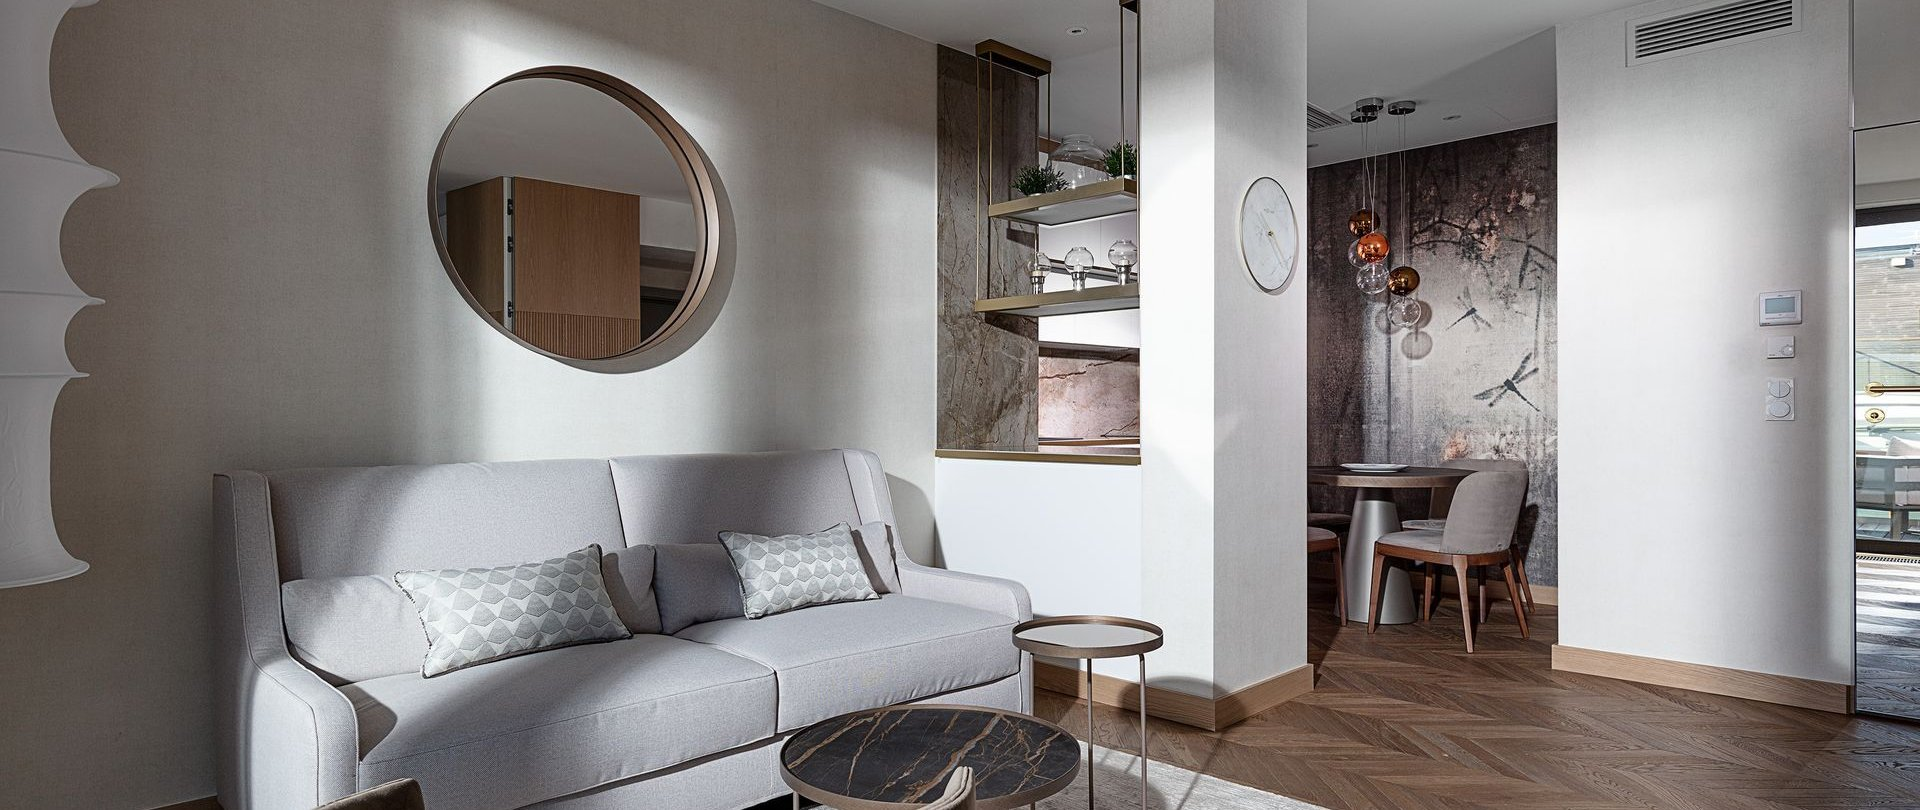 Apartment 324 Visby